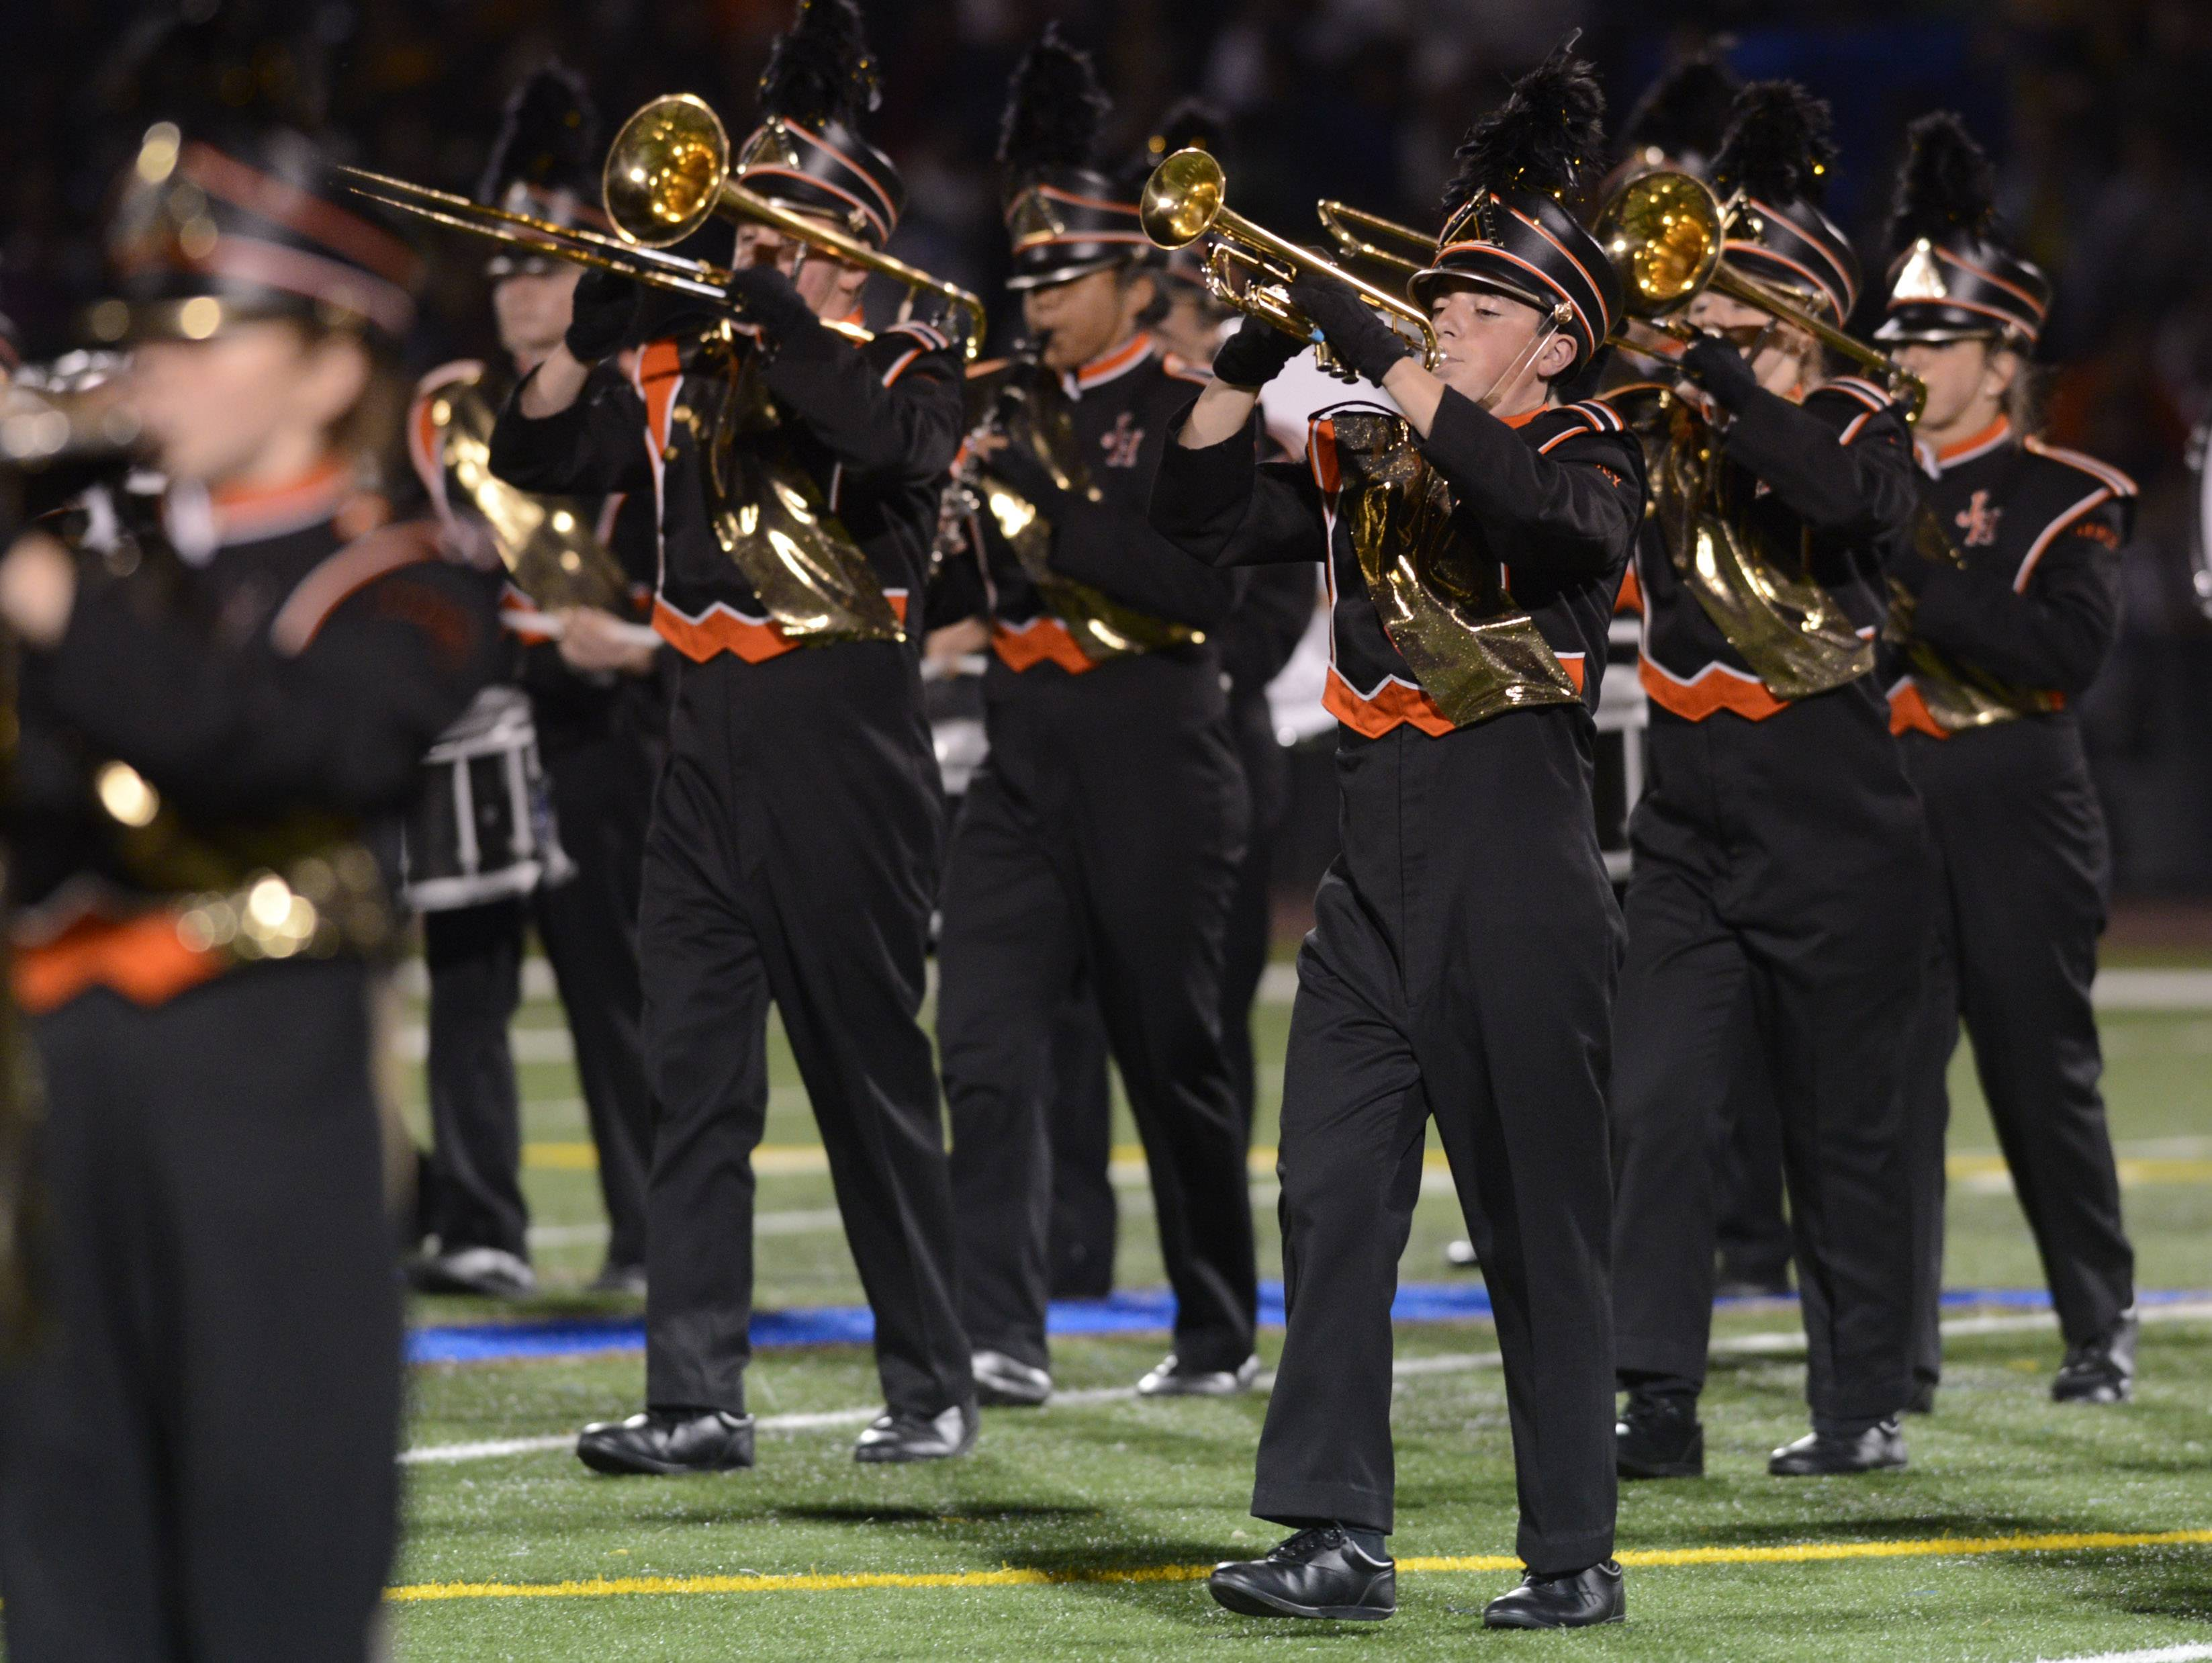 The Hersey High School Marching Band performs Saturday during the annual Chicagoland Marching Band Festival at Wheeling High School.